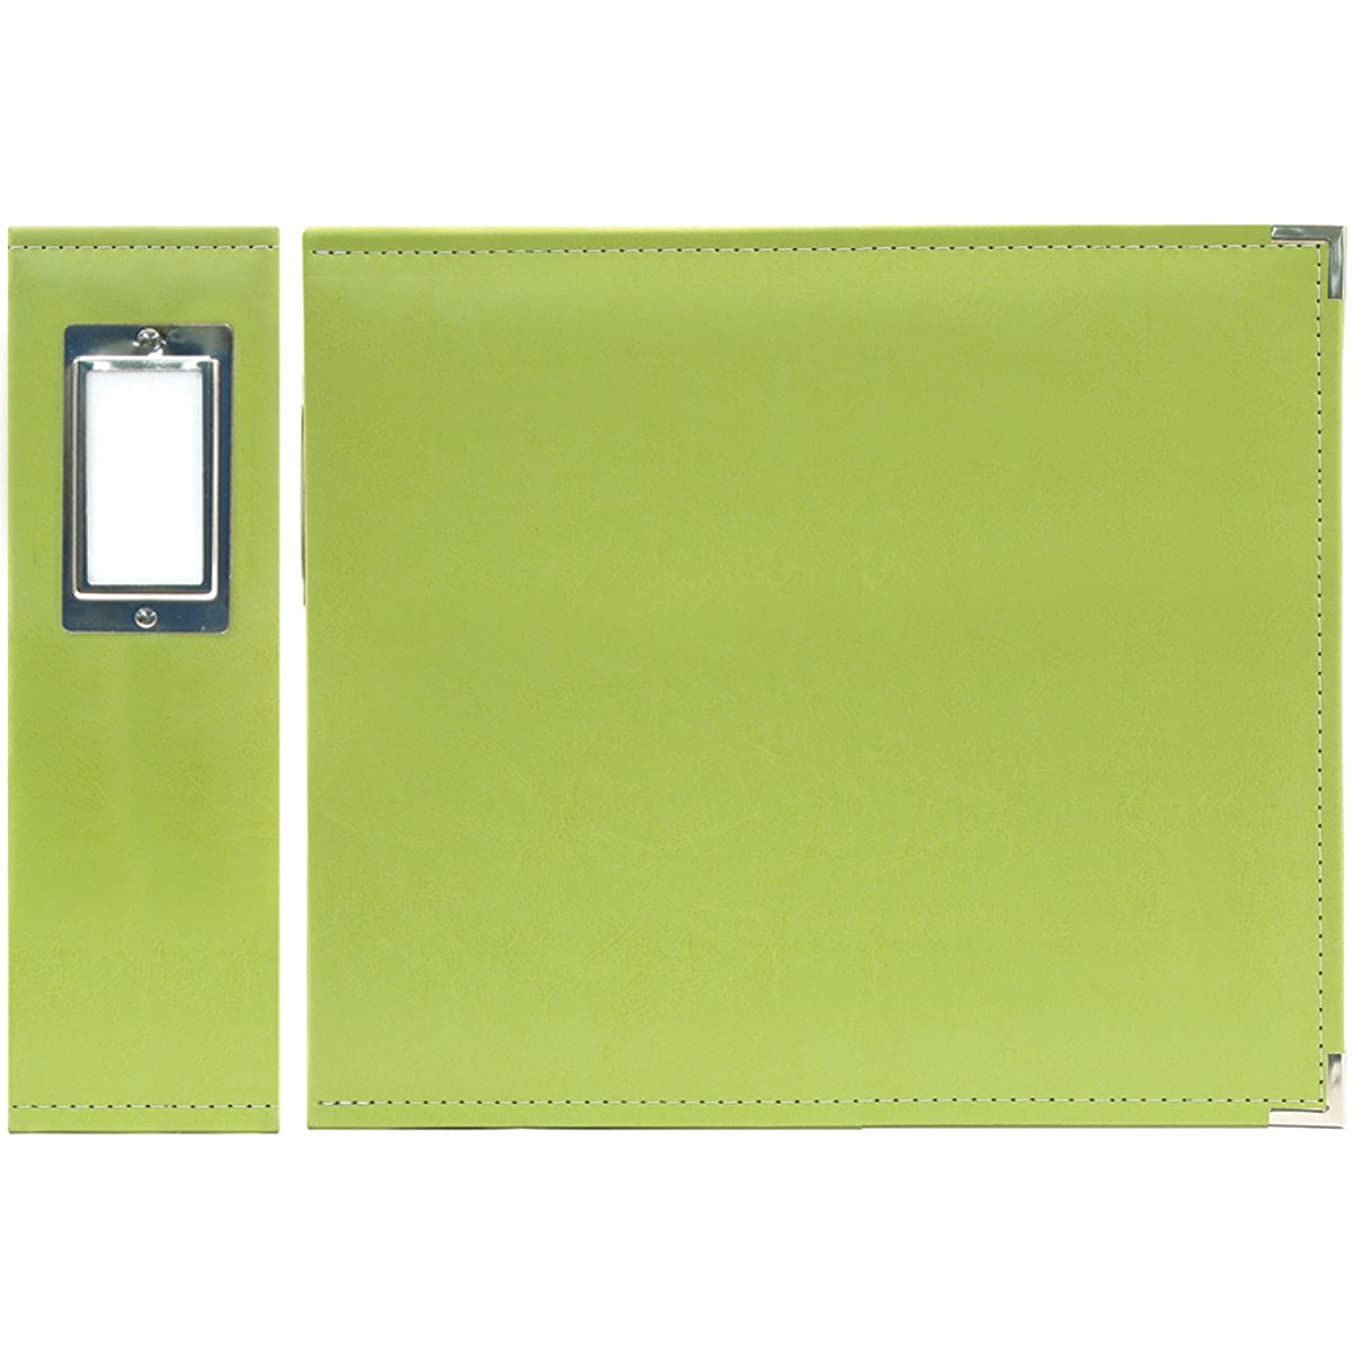 We R Memory Keepers We R Faux Leather 3-Ring Binder, 6 by 6-Inch, Kiwi